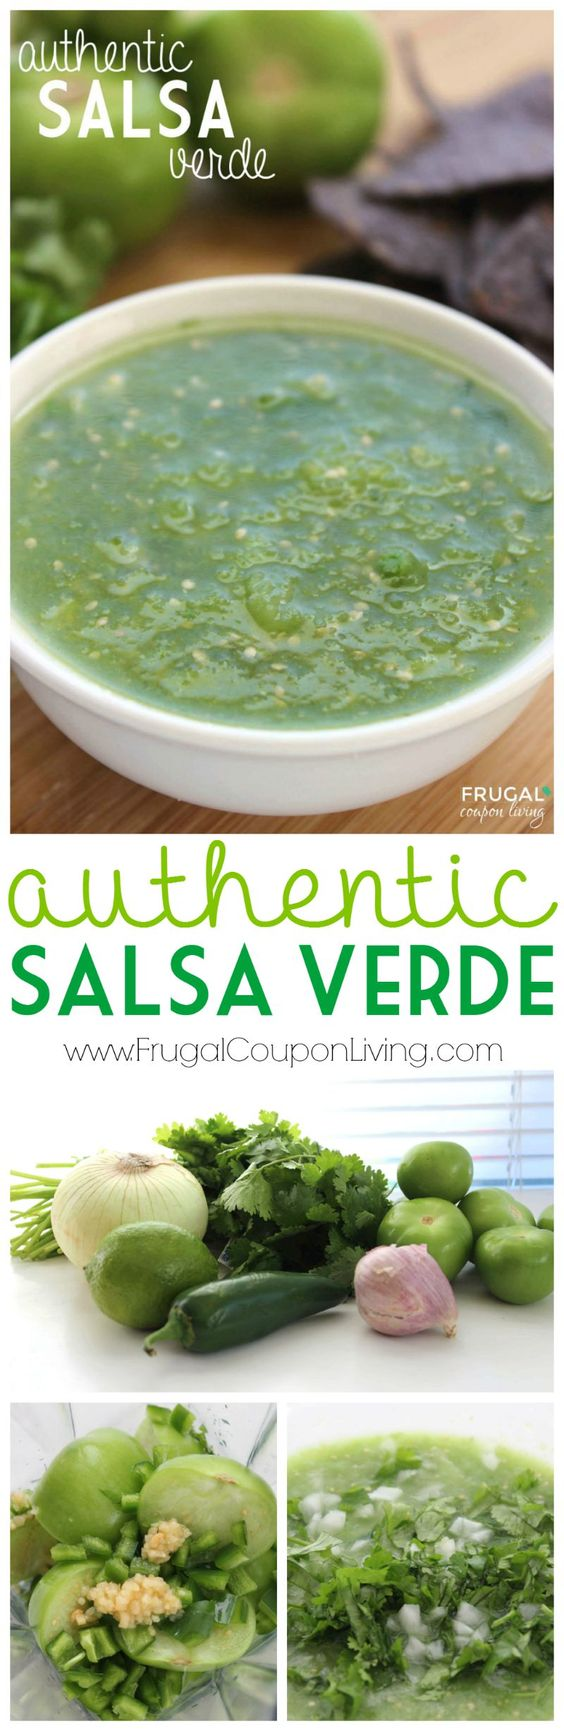 Authentic Mexican Salsa Verde Recipe on Frugal Coupon Living - better than the jar, save for a Cinco de Mayo Idea too!